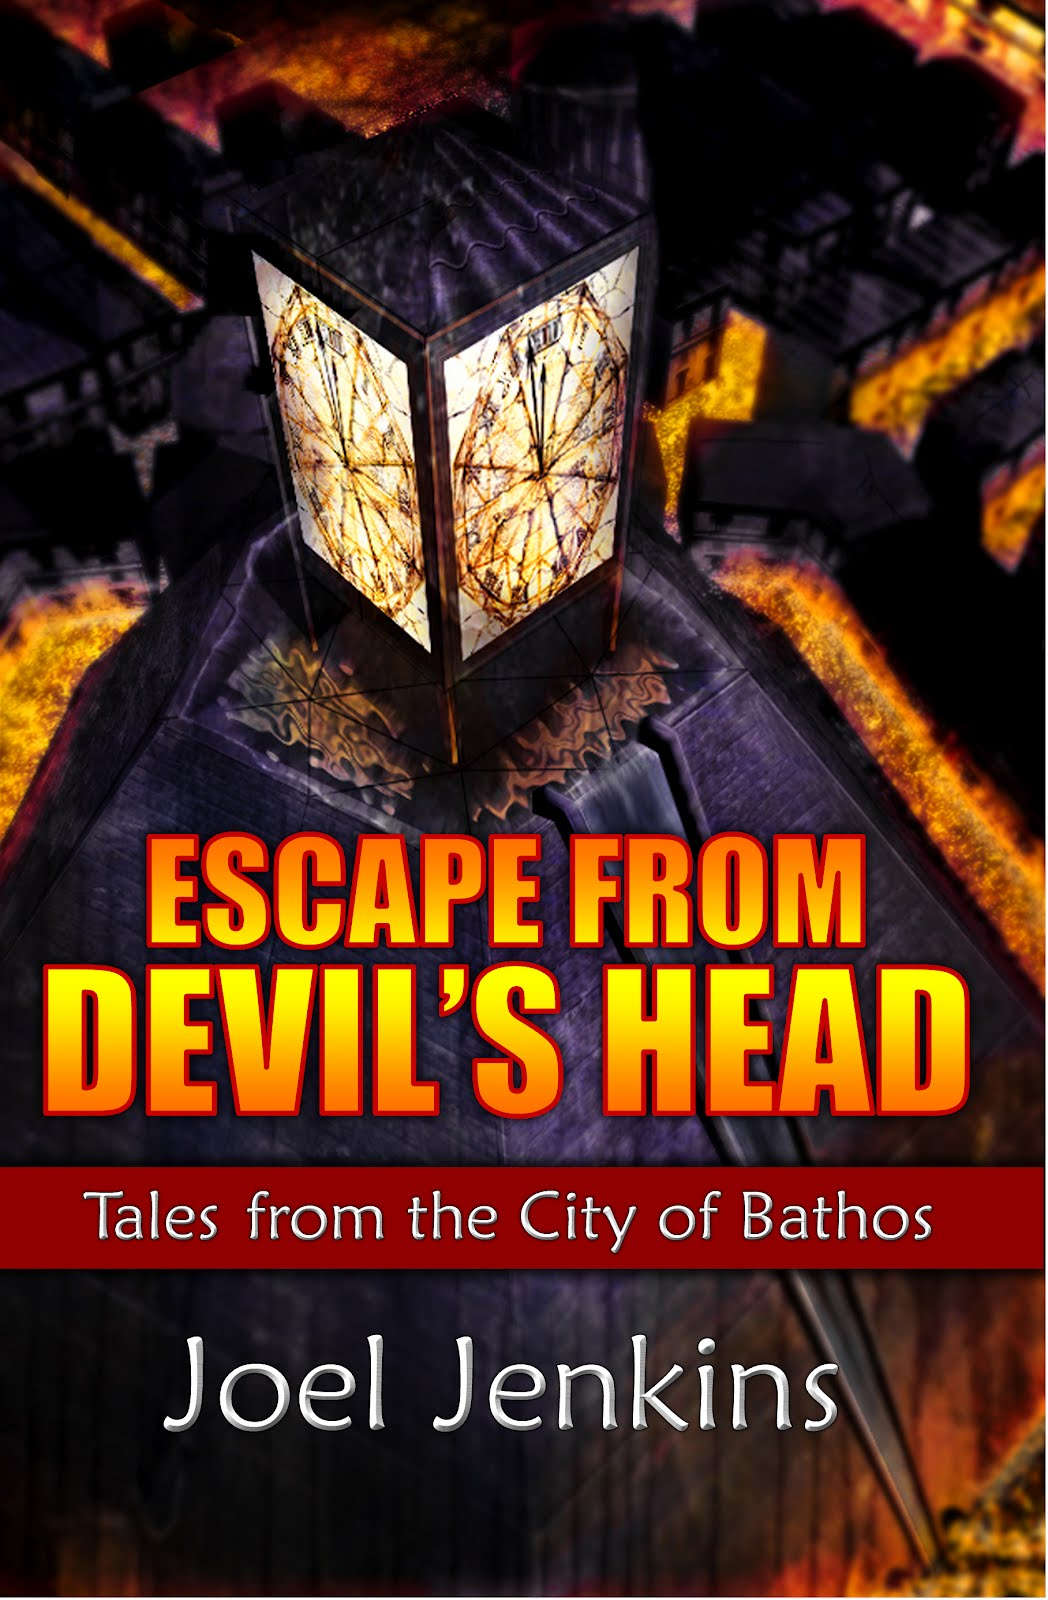 Escape from Devil's Head